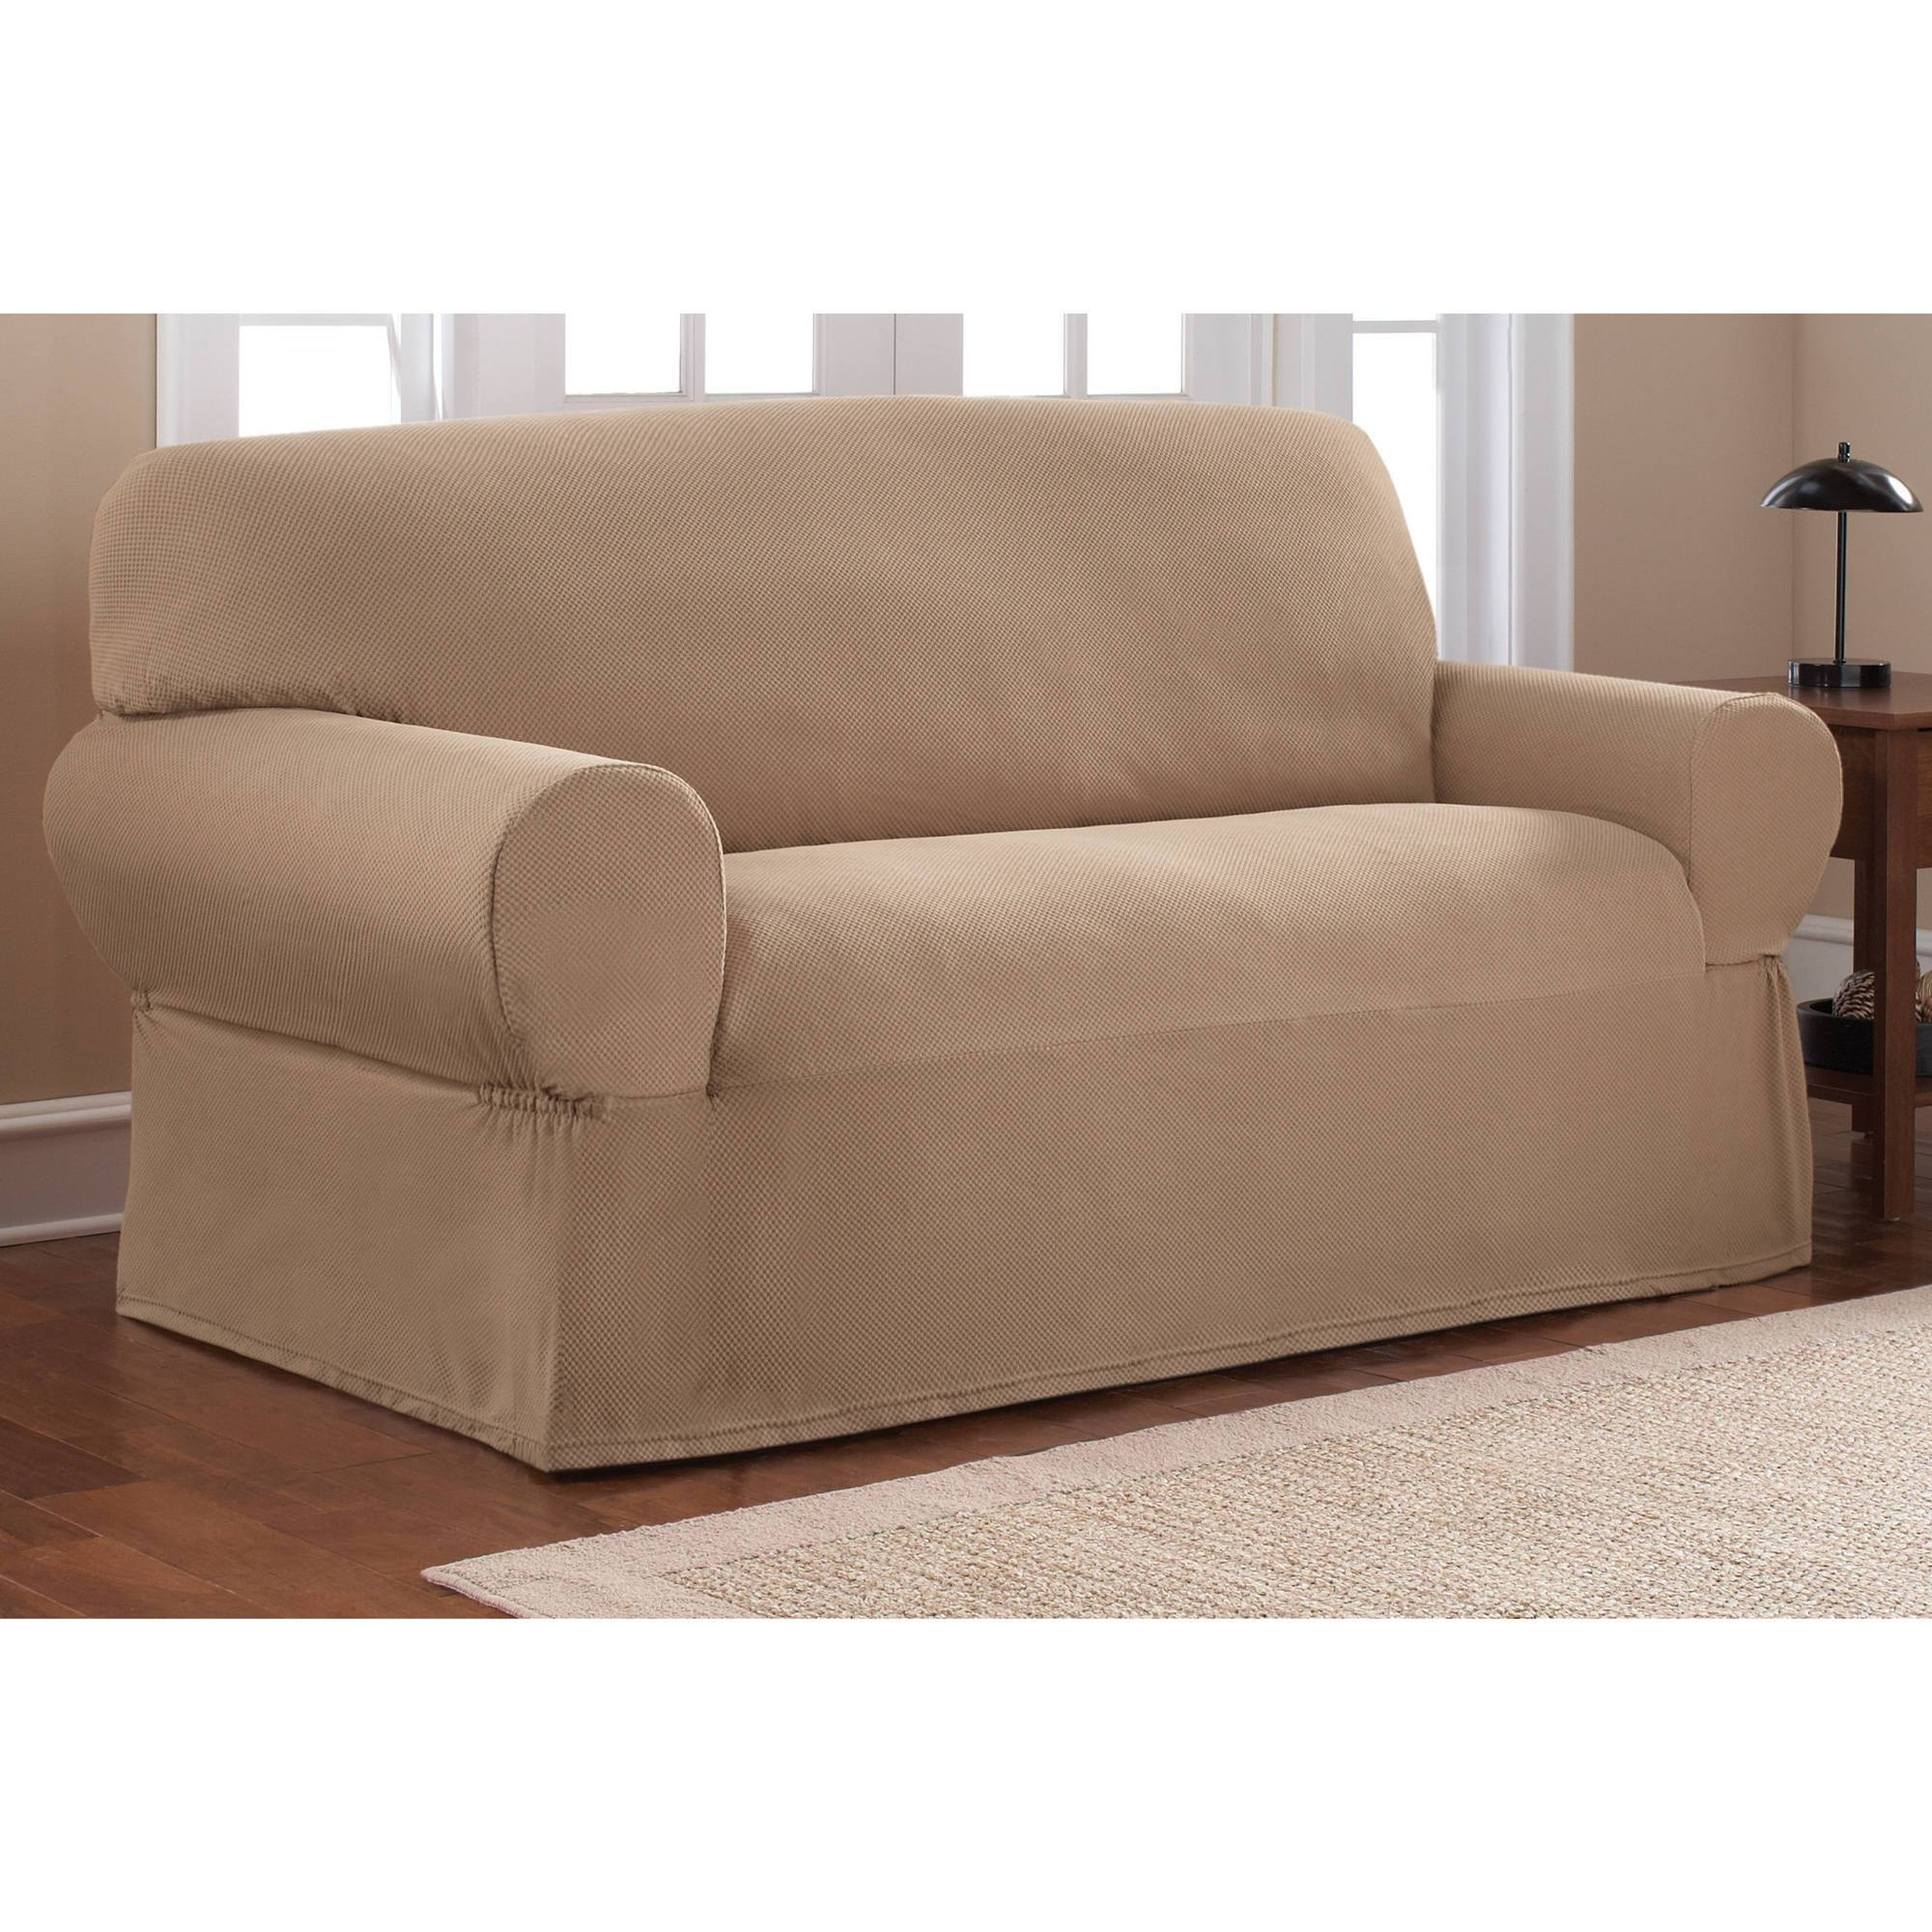 Mainstays 1-Piece Stretch Fabric Loveseat Slipcover - Walmart intended for Sofa Loveseat Slipcovers (Image 19 of 30)